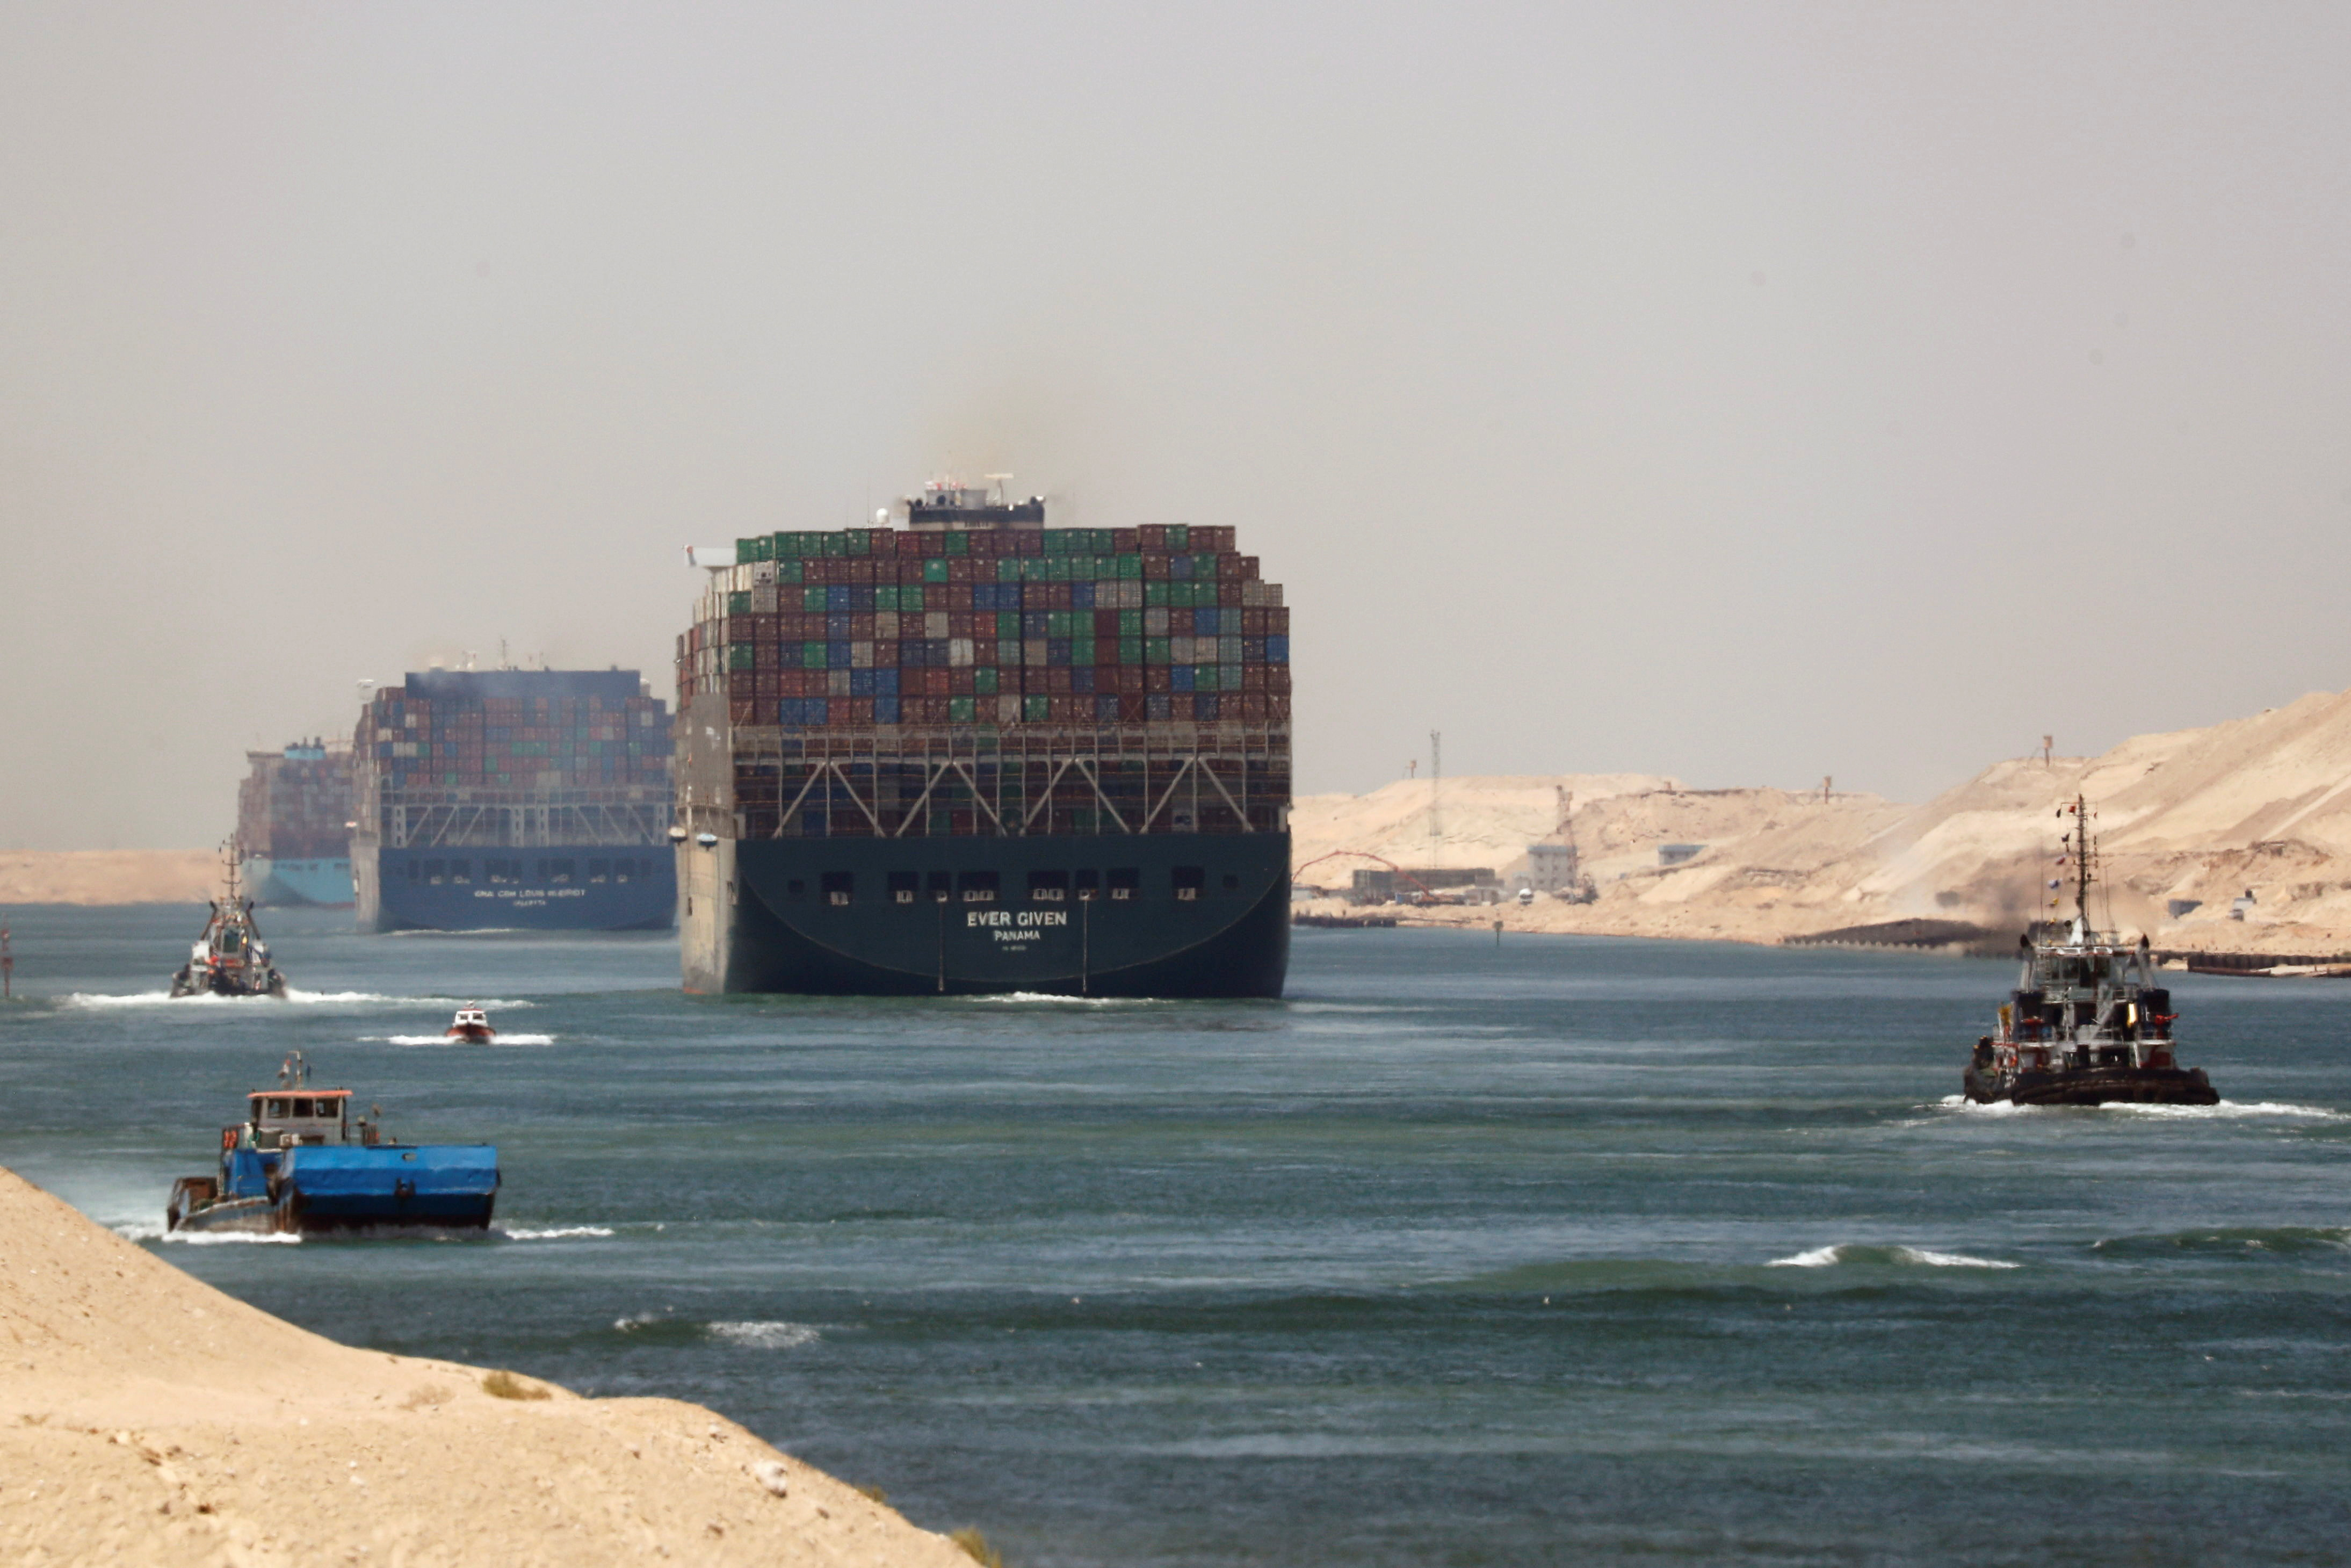 Ever Given, one of the world's largest container ships, sets sail to leave through Suez Canal after the canal authority reached a settlement with the vessel's owner and insurers, in Ismailia, Egypt, July 7, 2021. REUTERS/Amr Abdallah Dalsh